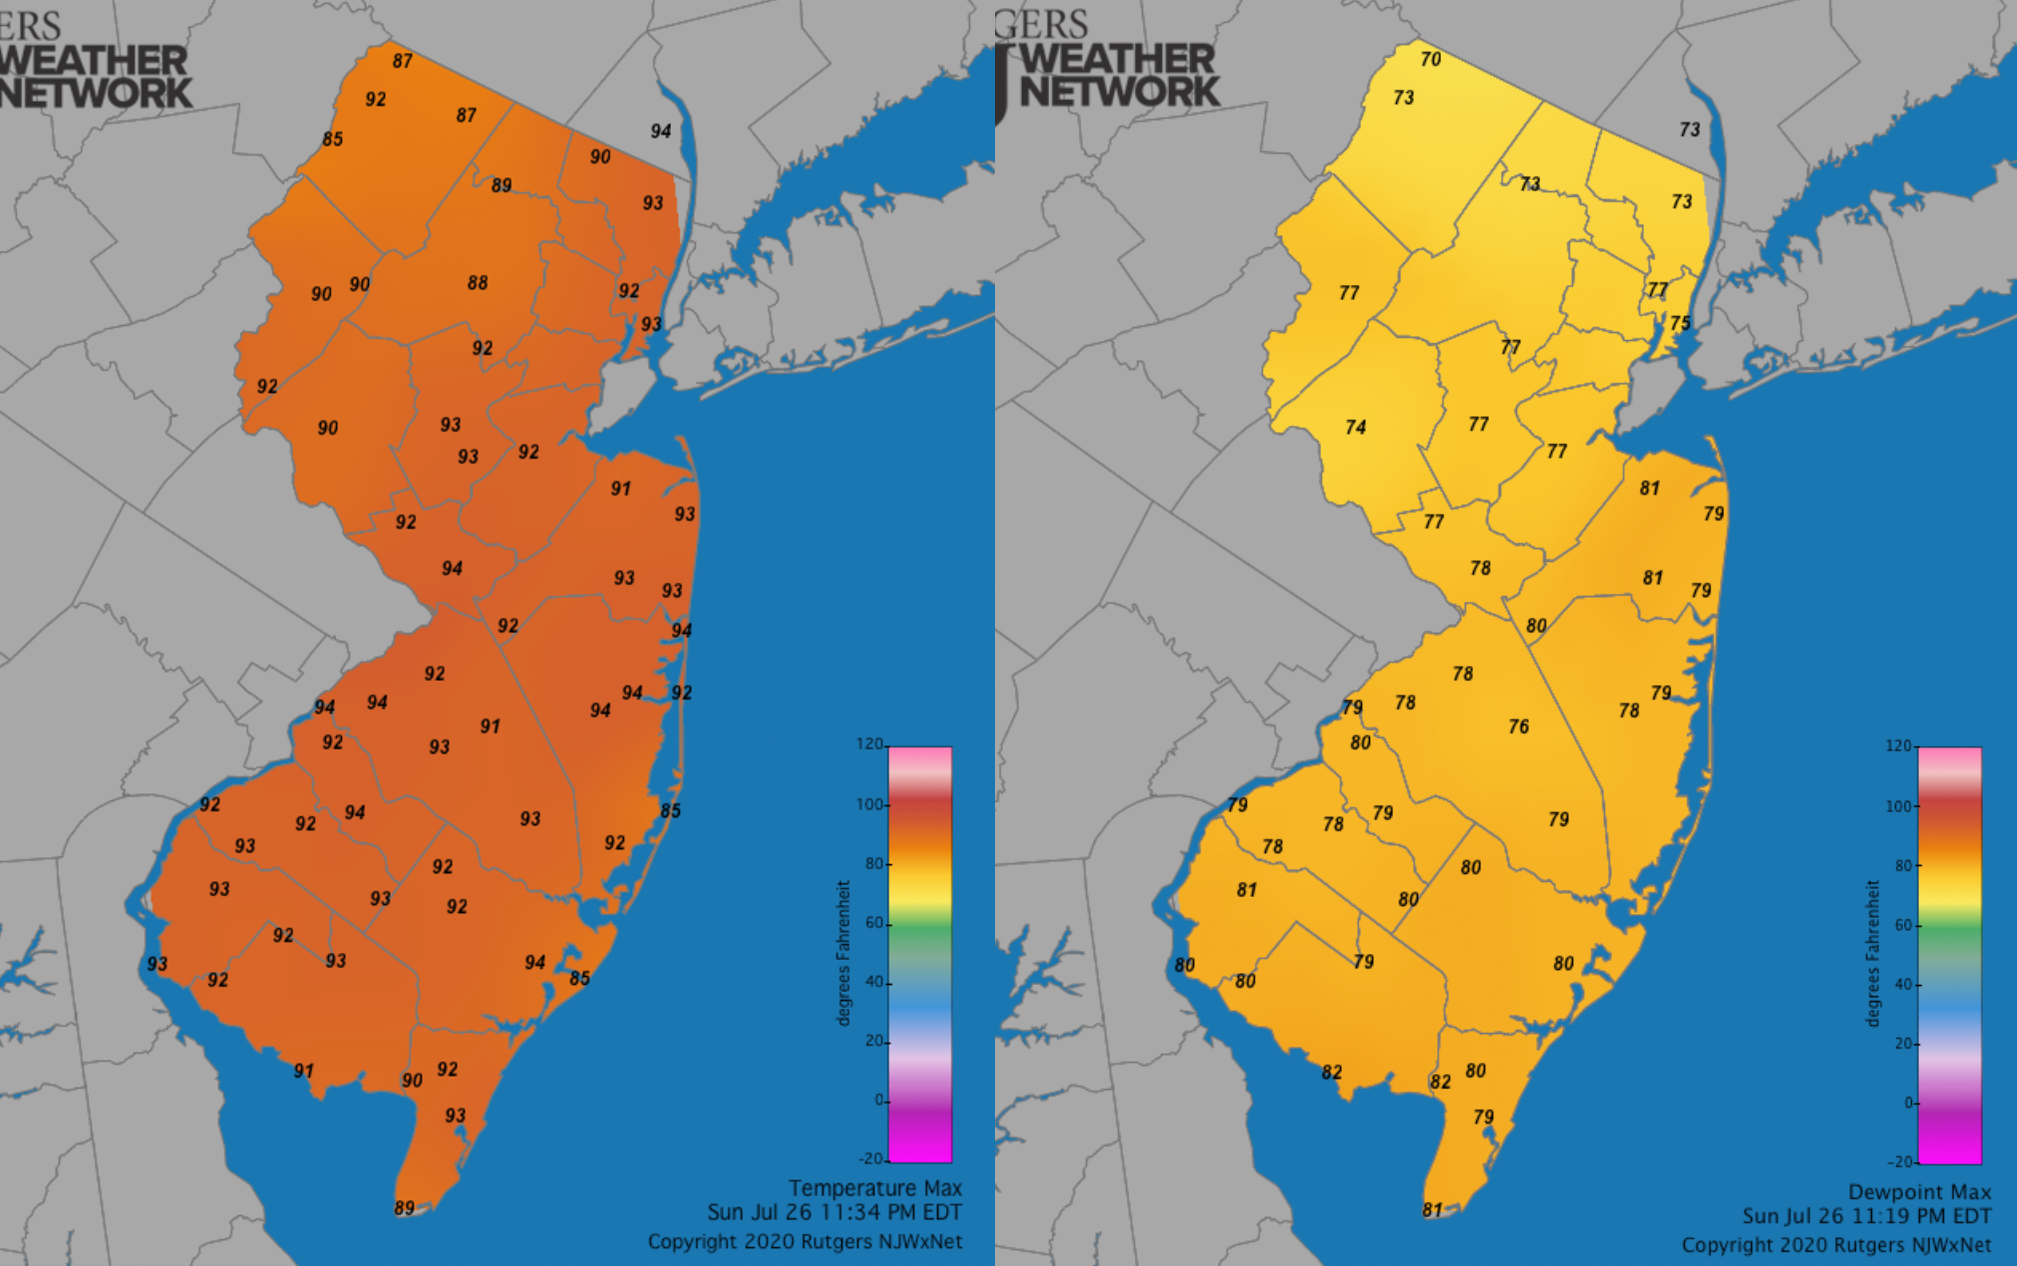 July 26th maximum daily temperature and dewpoint maps